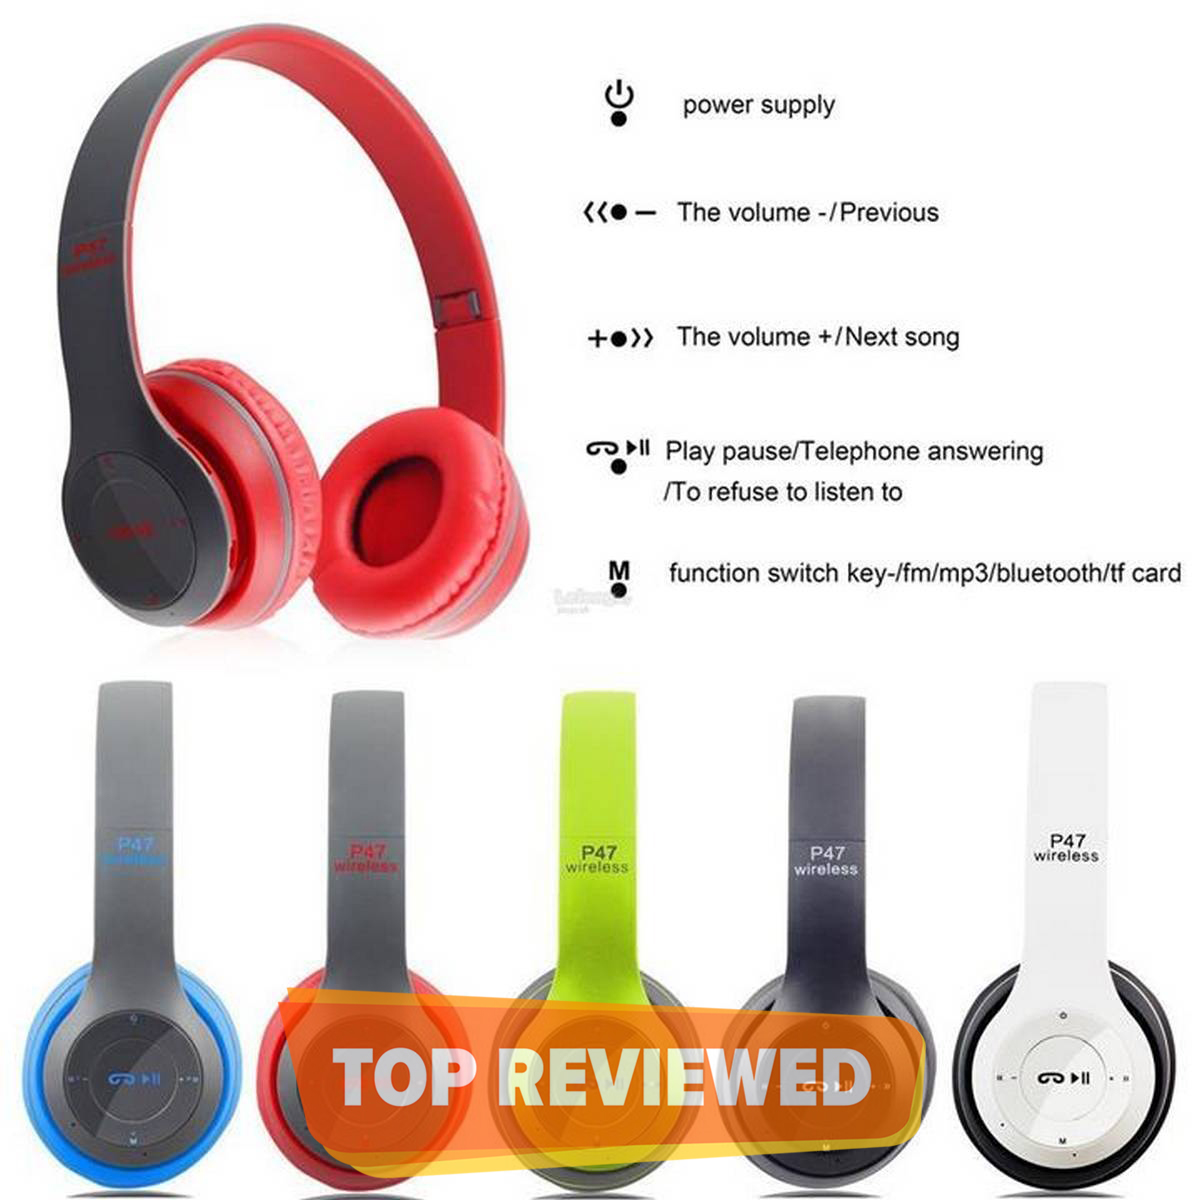 Wireless Headphones, P47 Bluetooth Foldable Headset with Microphone Support FM Radio TF for PC TV Smart Phones & Tablets Etc